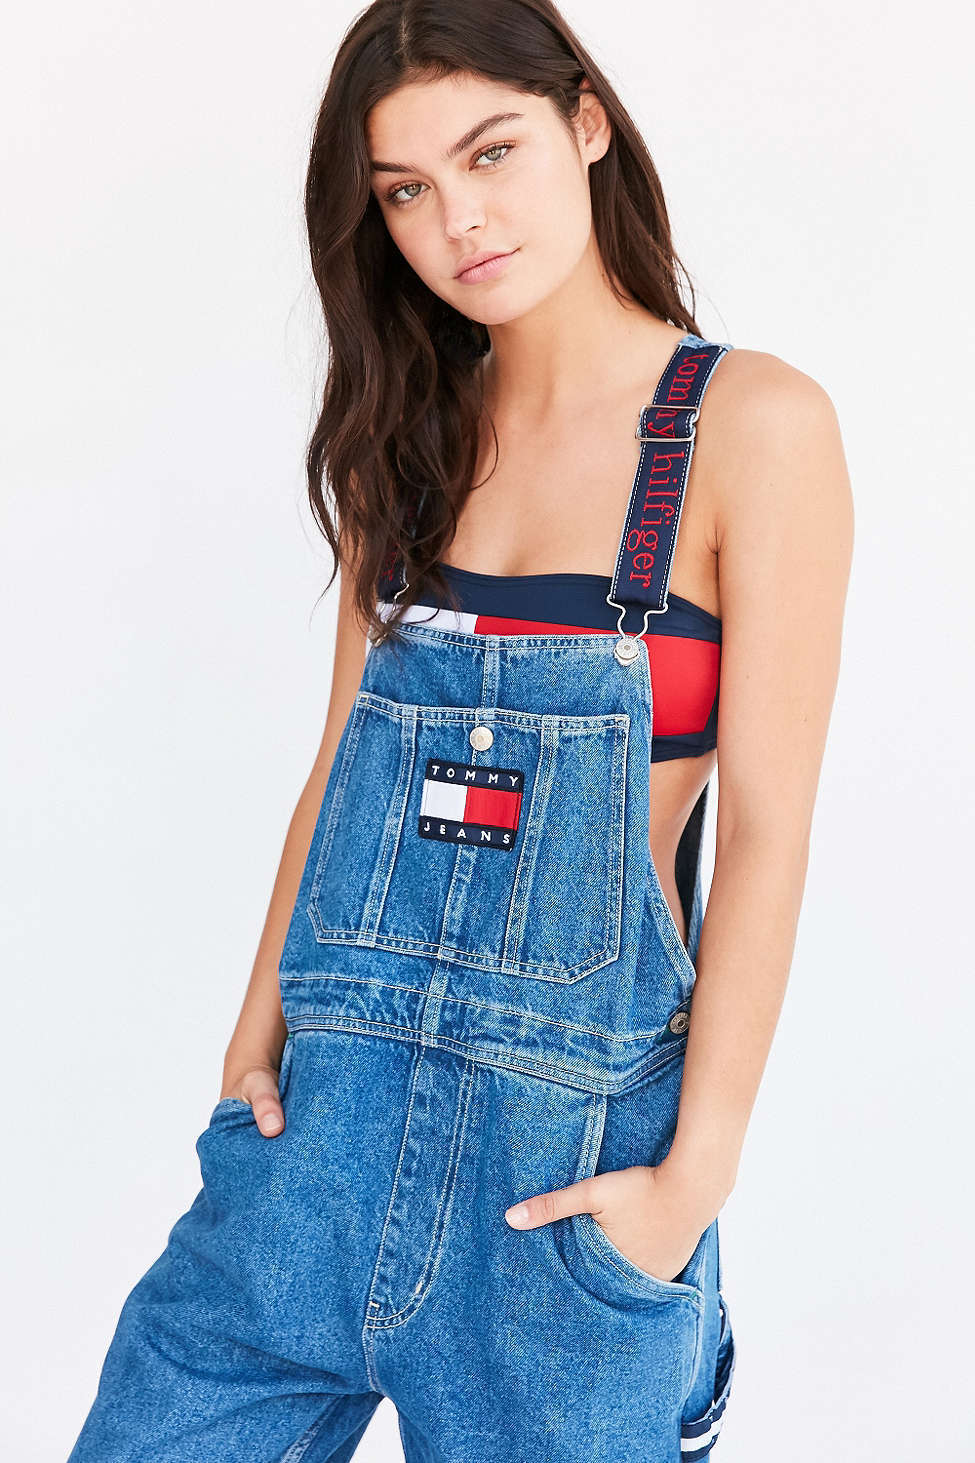 local popular belt also fashionable jeans tommy bandeau